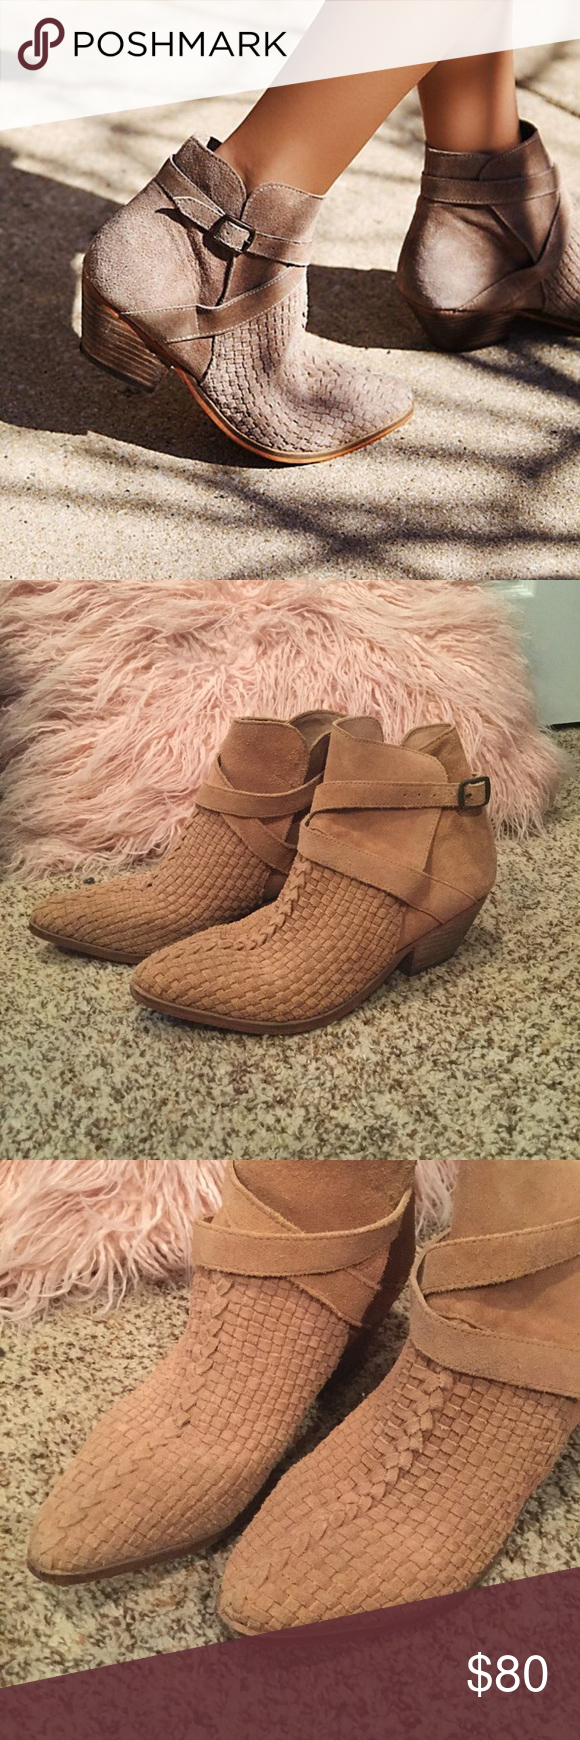 """Free People Suede """"Venture"""" Ankle Boot!🍂 These boots are"""